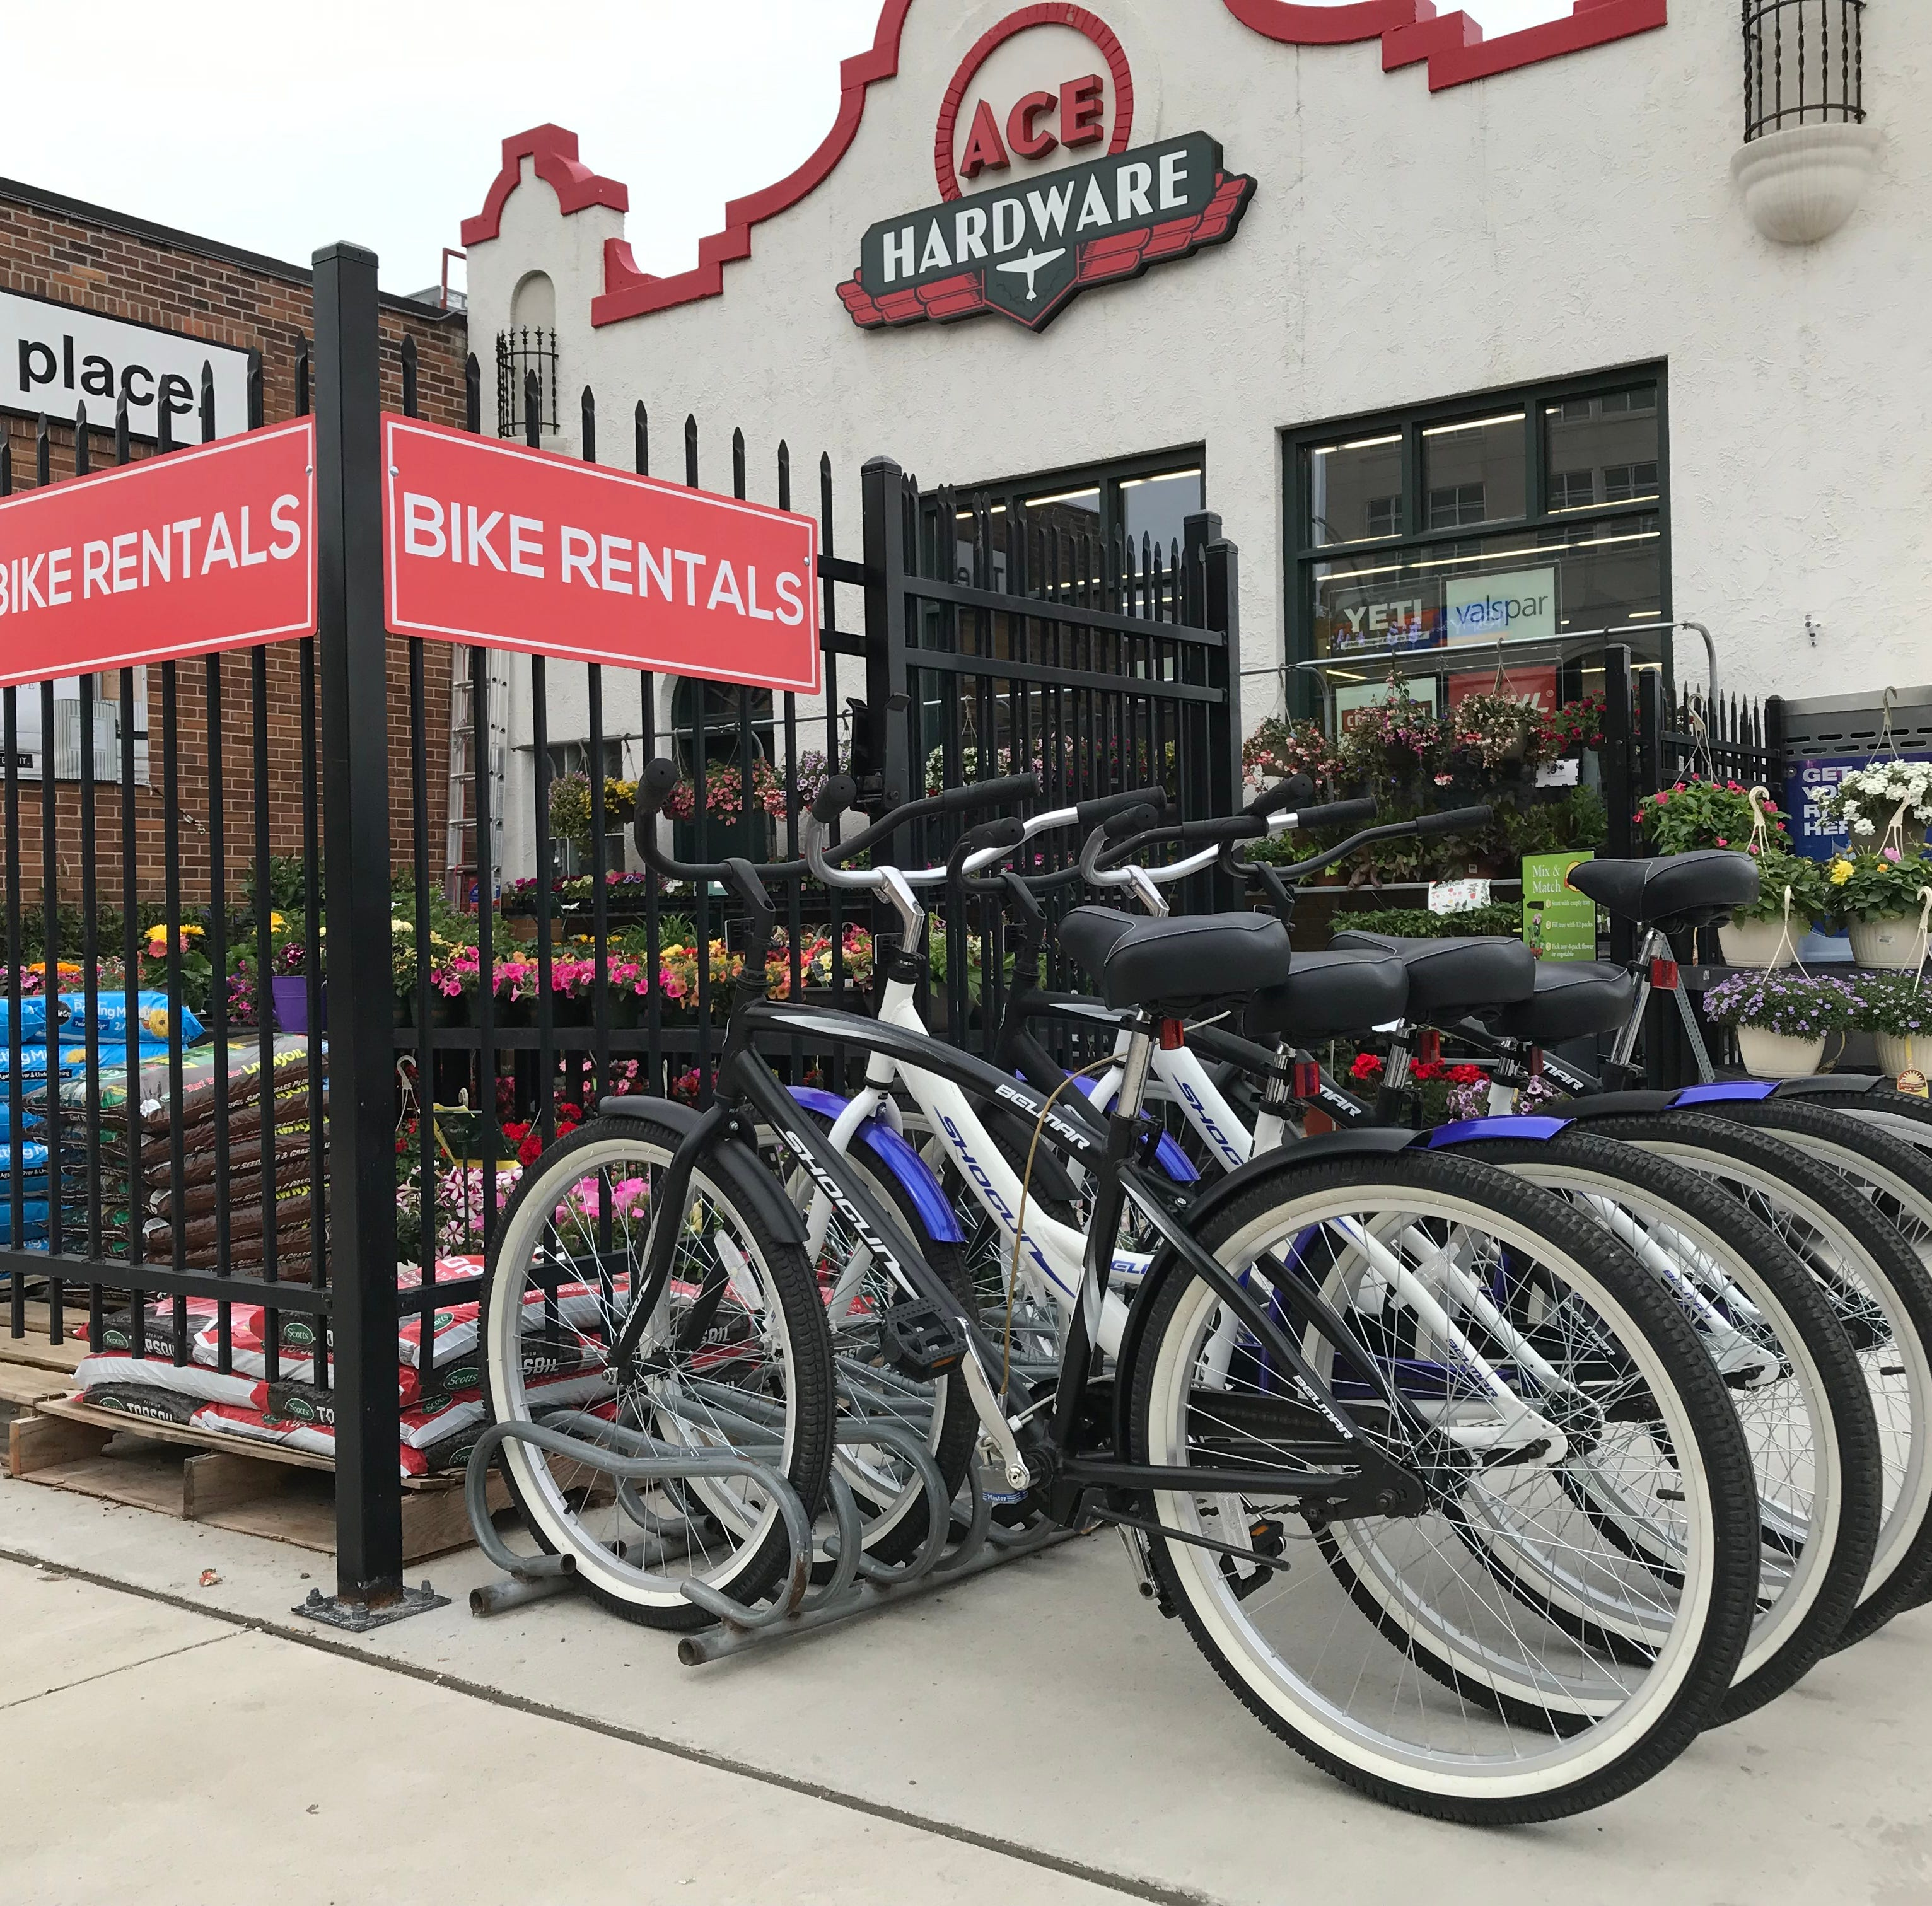 Nyberg's Ace store in downtown Sioux Falls offers bike rentals